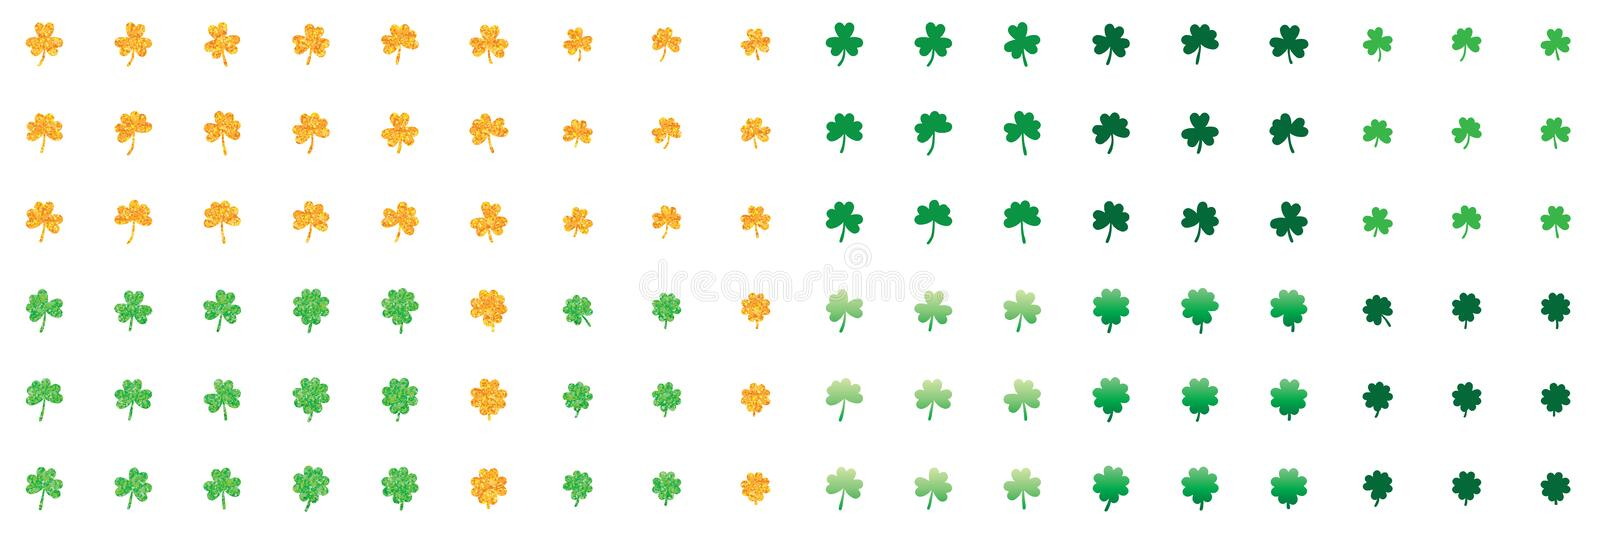 Shamrock leaf love gold glitter green set stock illustration